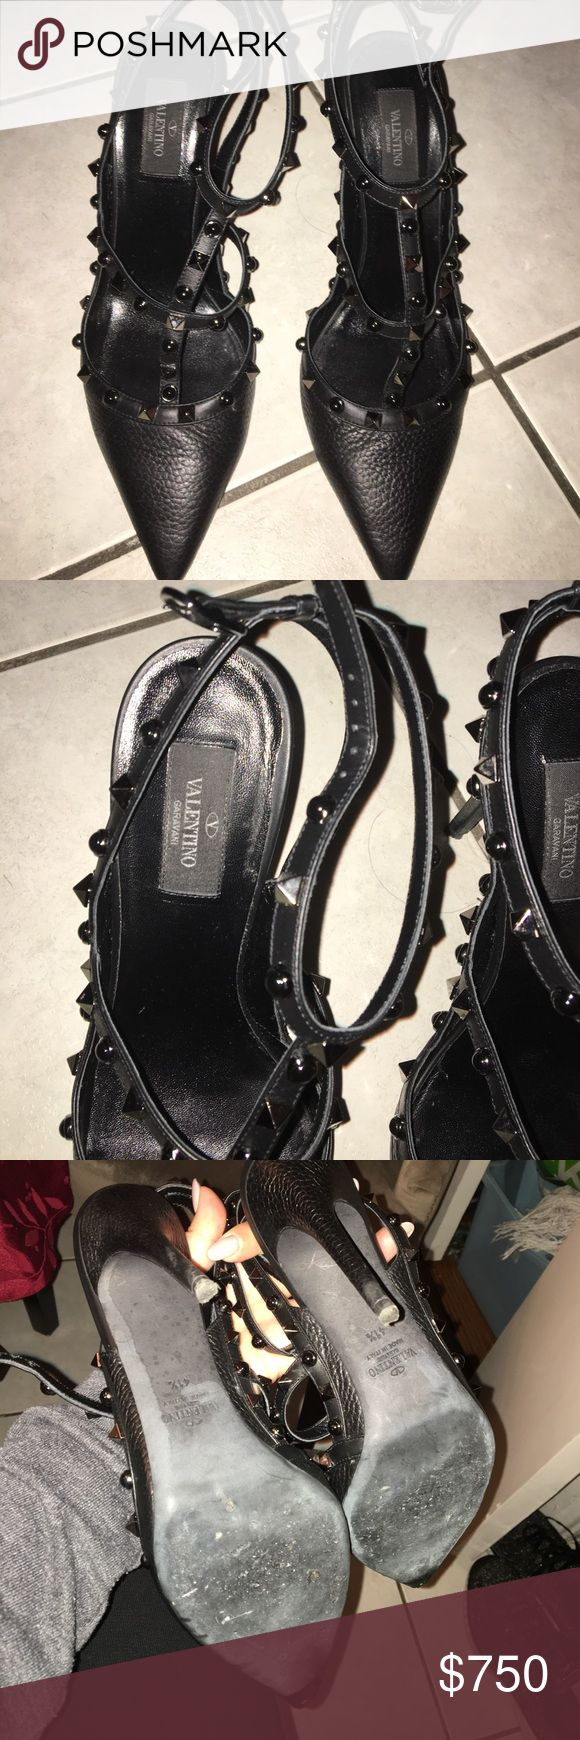 Valentino Rockstud pumps Black with gunmetal grommets.  So sexy and I'm amazing condition.  Worn once. Size: 41, fits like a us 10. Valentino Shoes